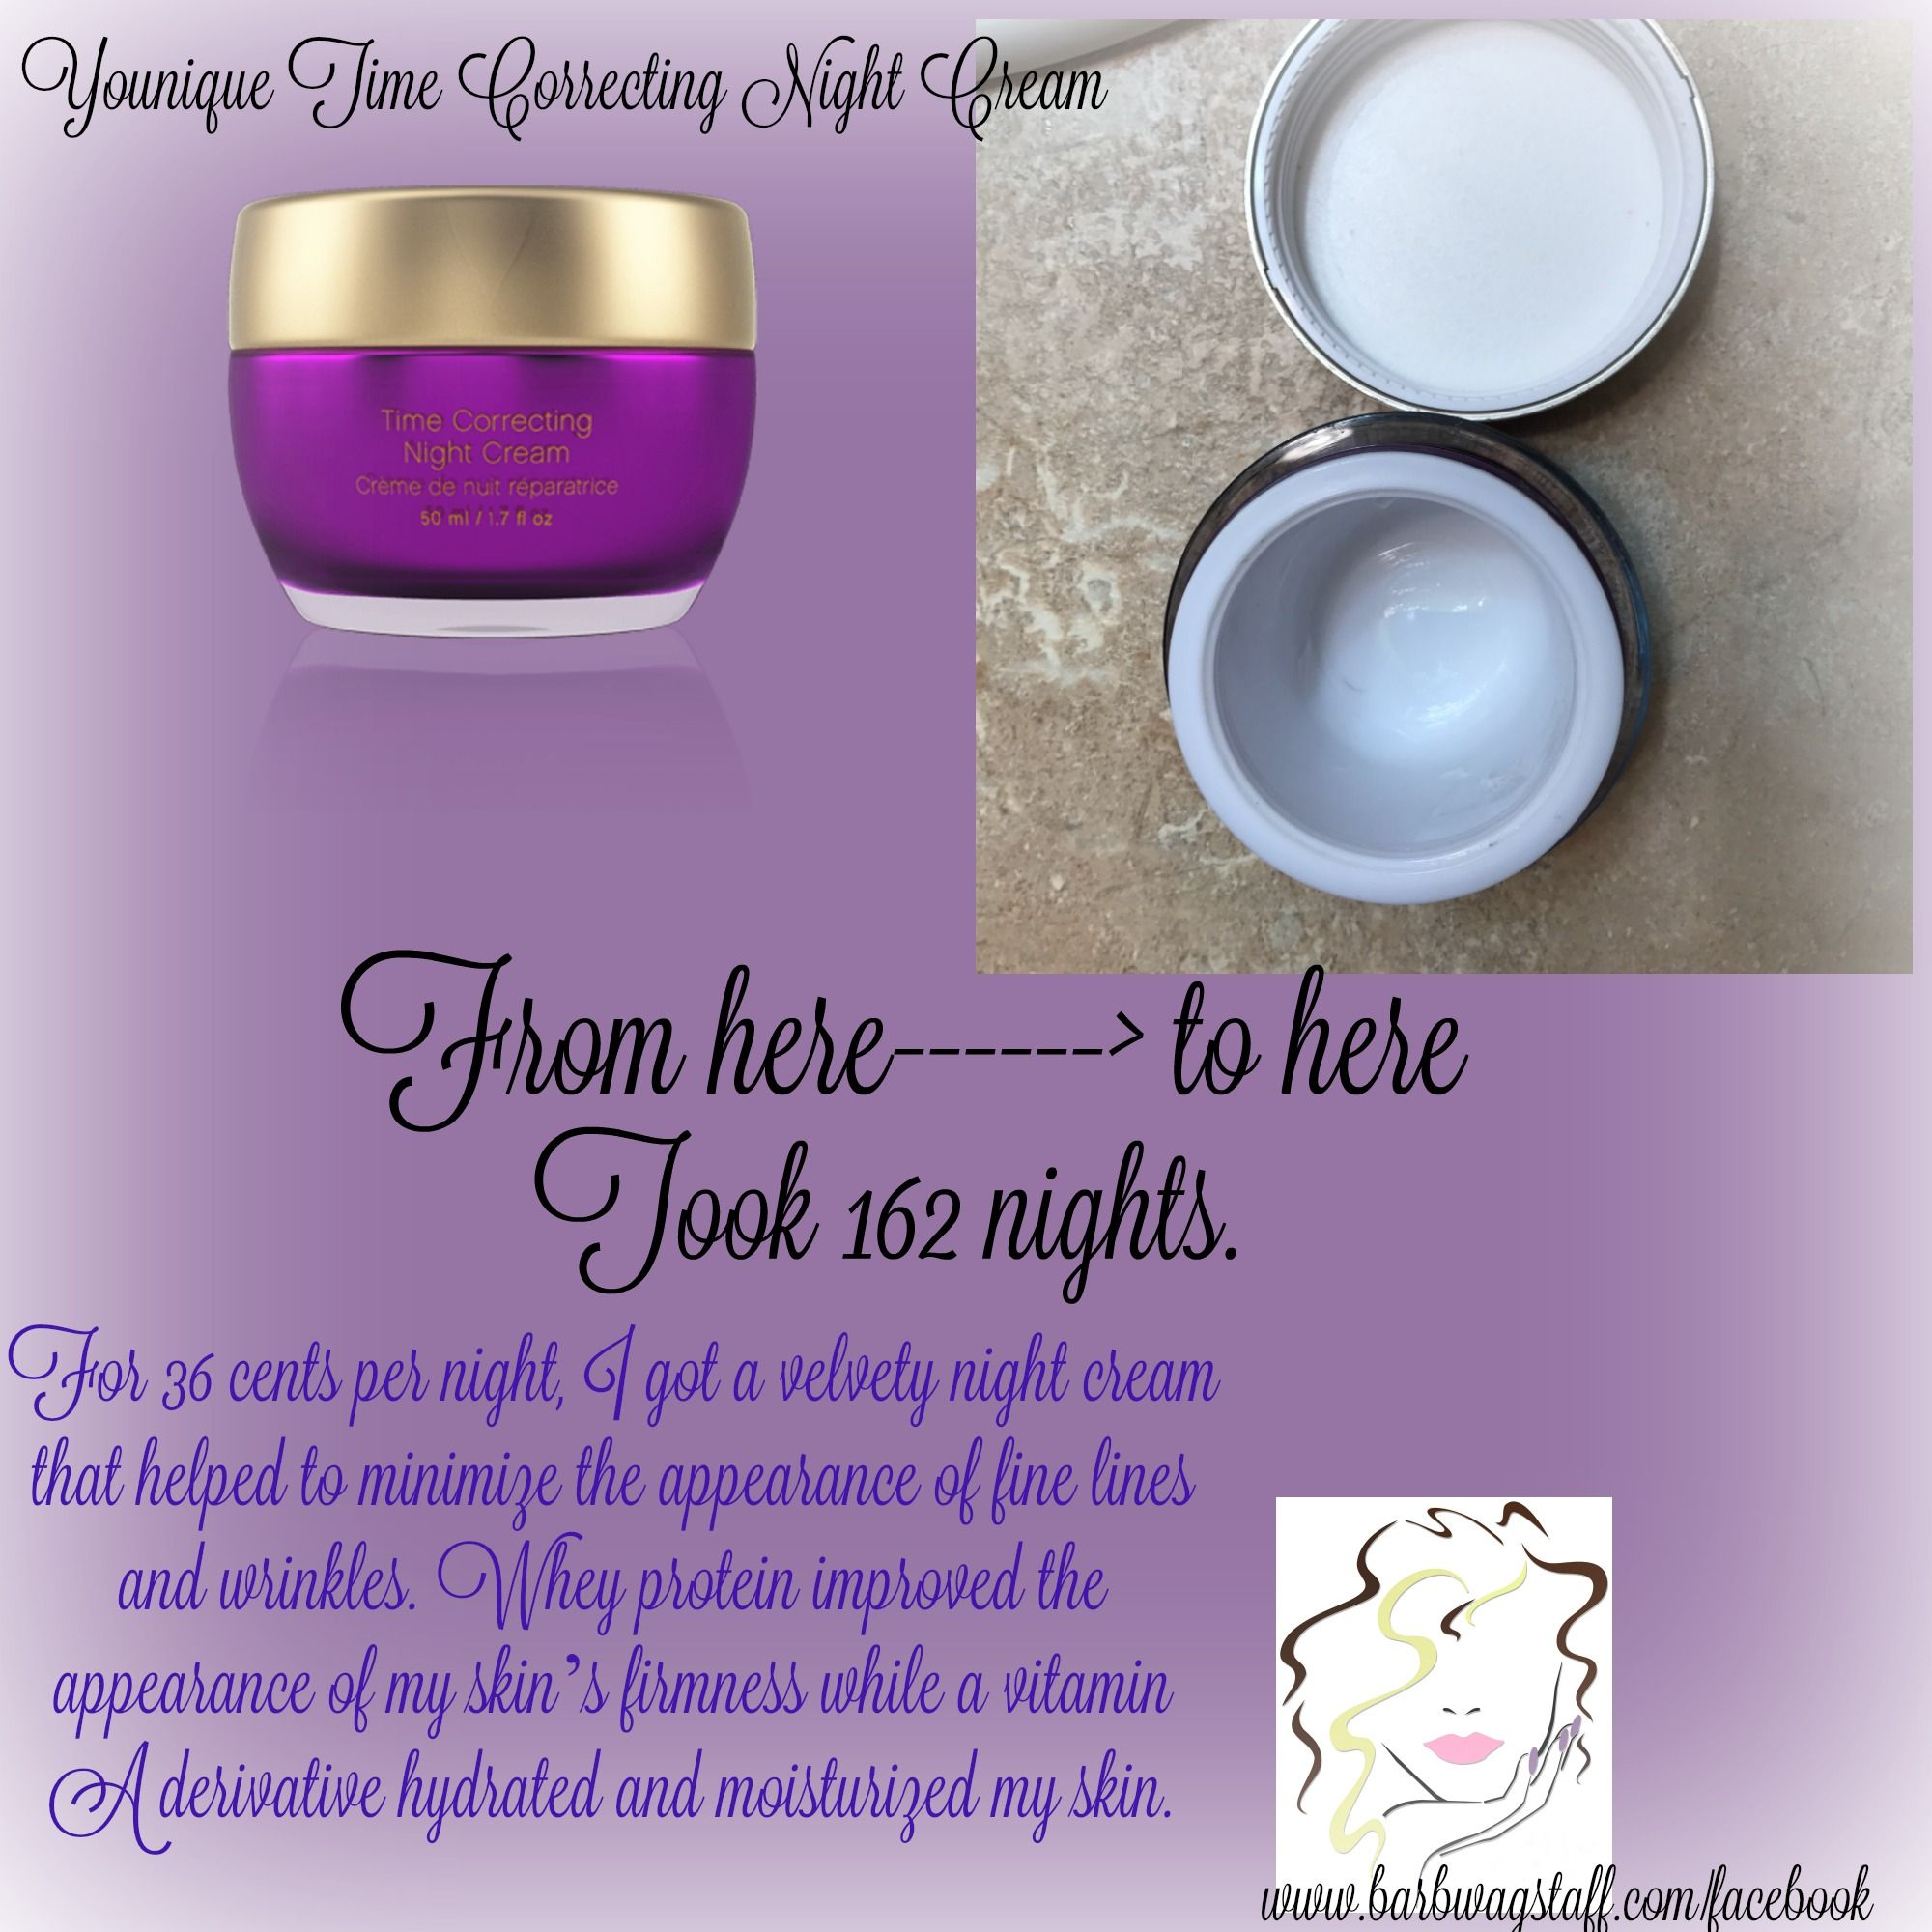 Younique night cream costs me 36 cents Canadian per night to use